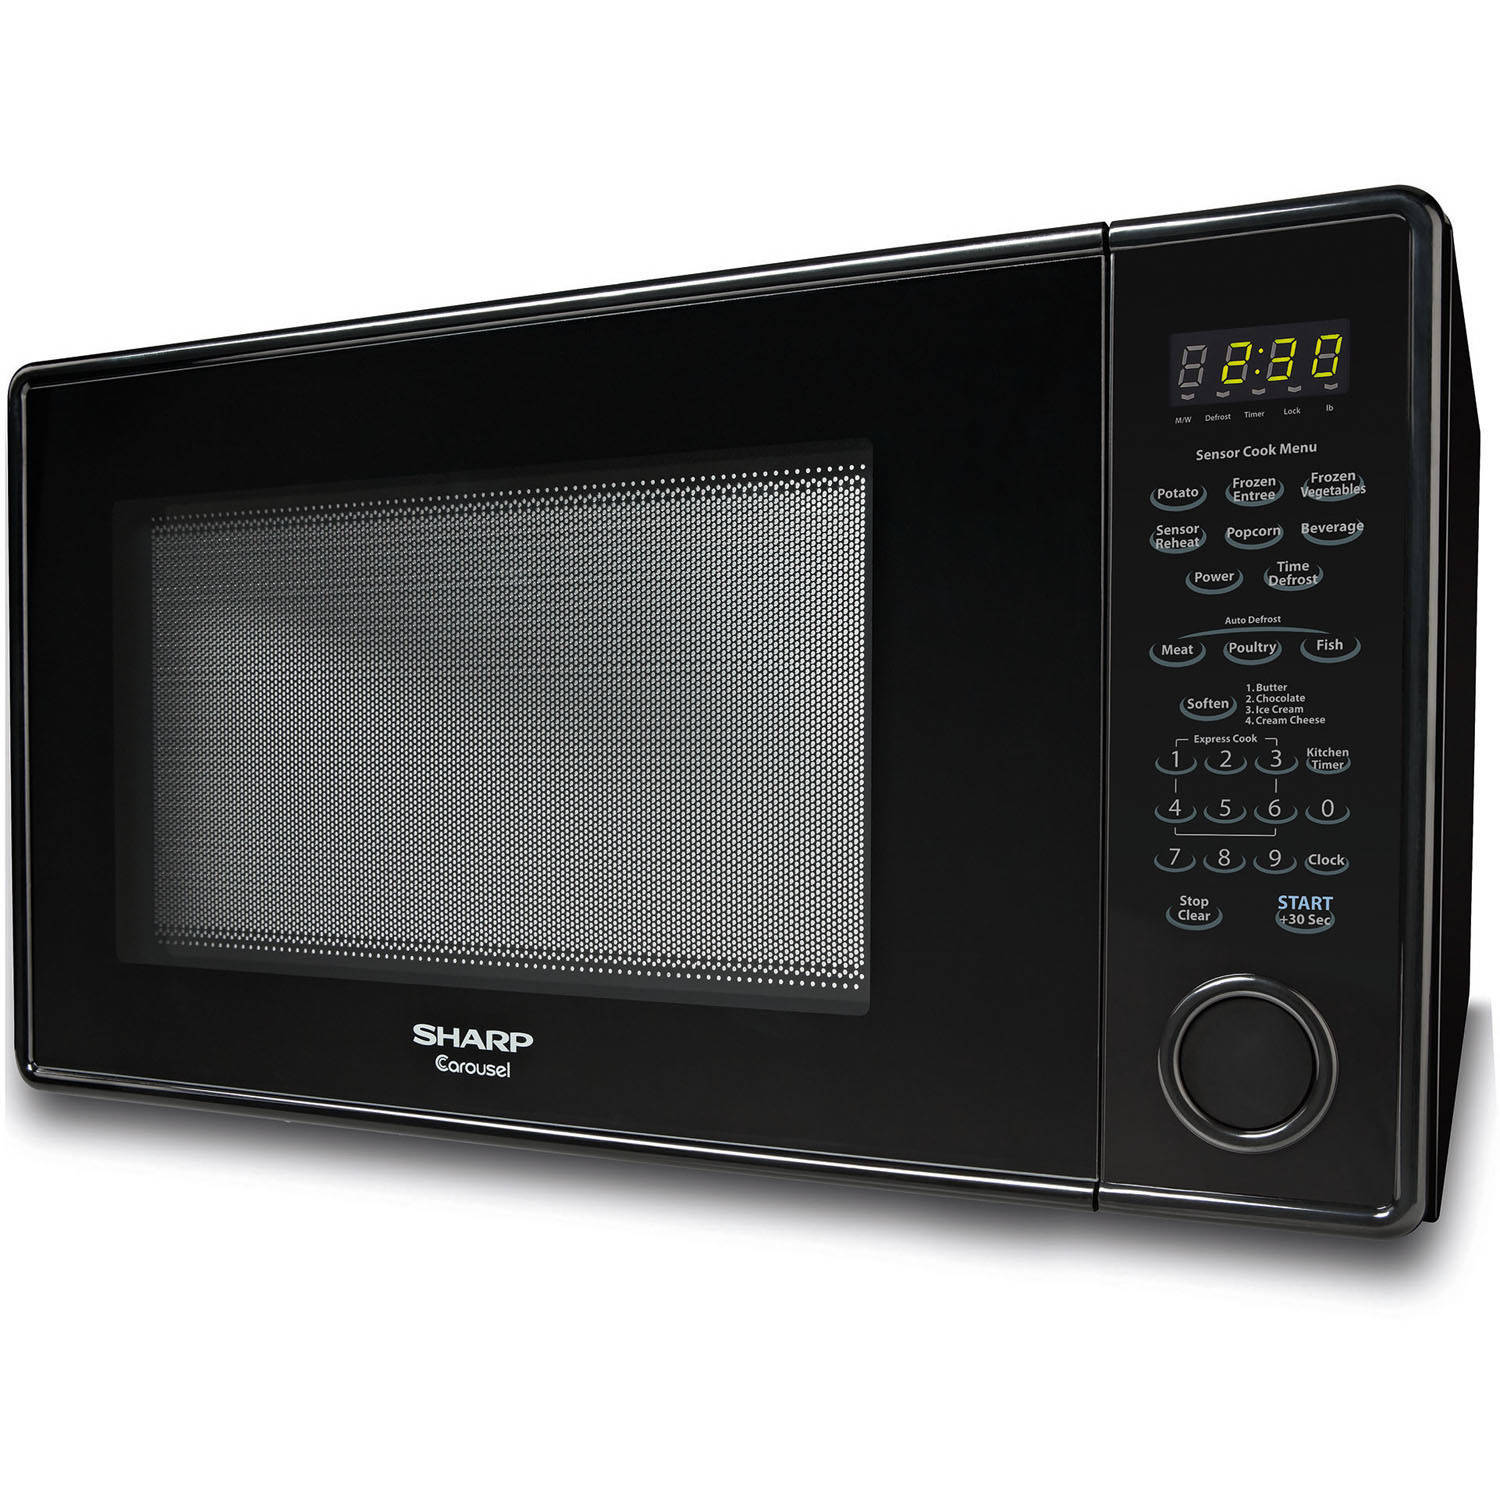 Sharp R551zs Carousel Countertop Microwave Oven 1 8 Cu Ft 1100w Stainless Steel